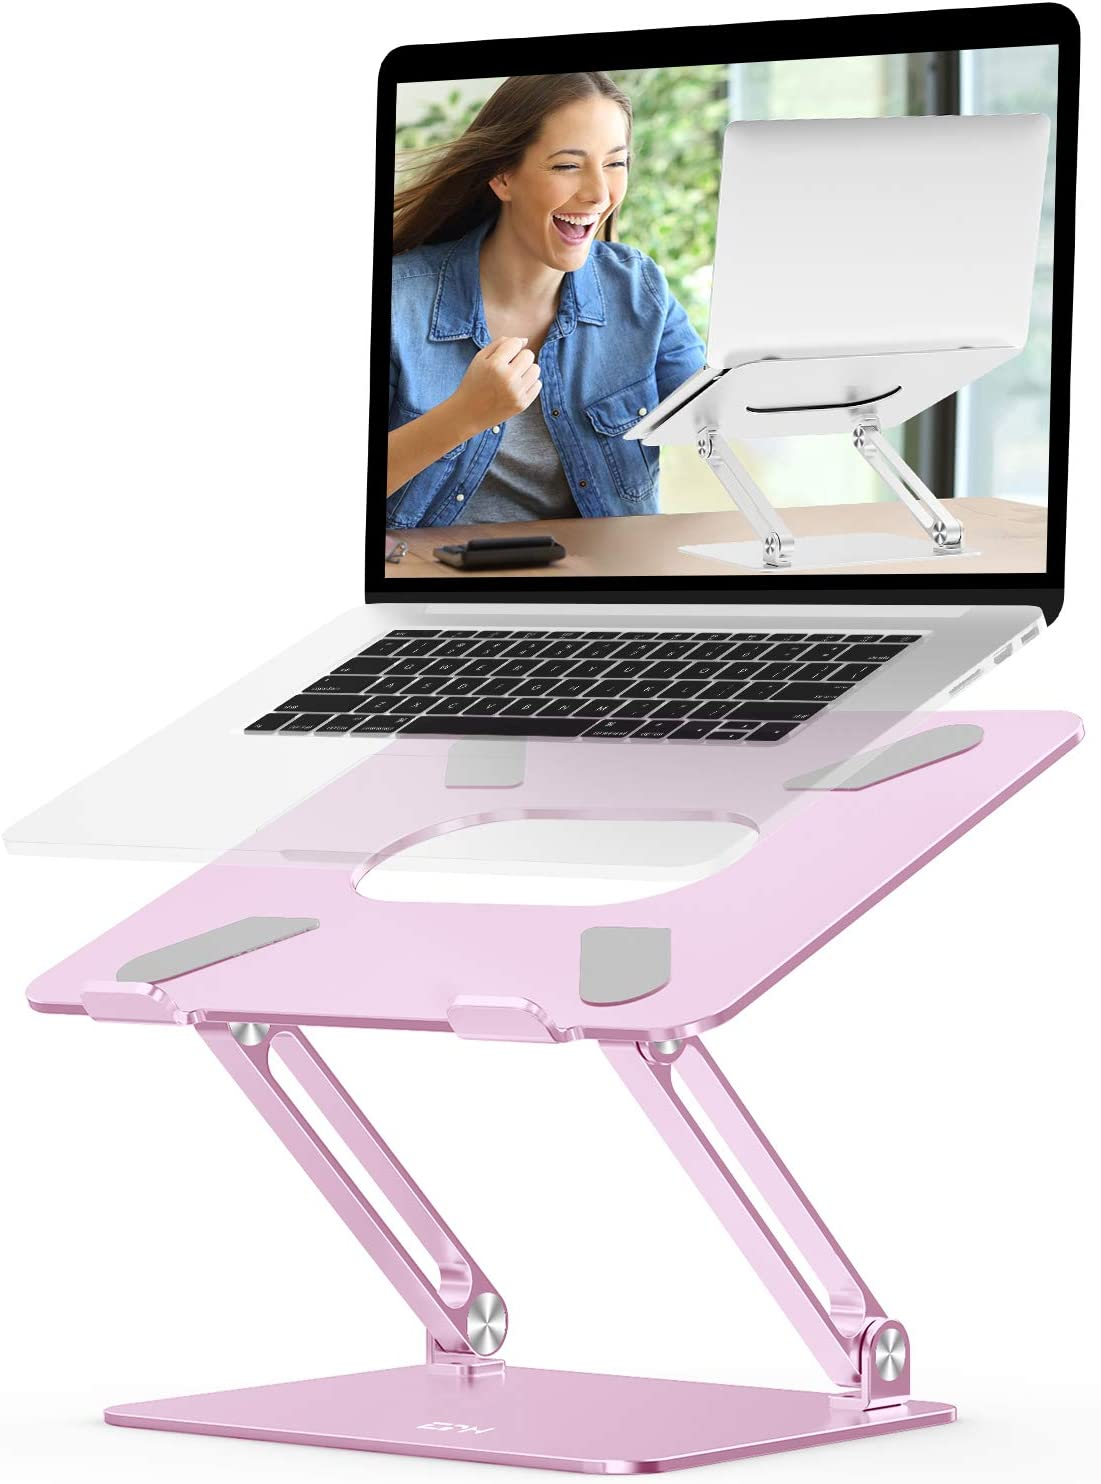 EPN Laptop Stand, Ergonomic Aluminium Alloy Computer Riser Adjustable Height Portable Holder for Desk with Heat-Vent, Compatible for MacBook Pro/Air, Dell XPS, HP, Samsung Laptops Up to 17